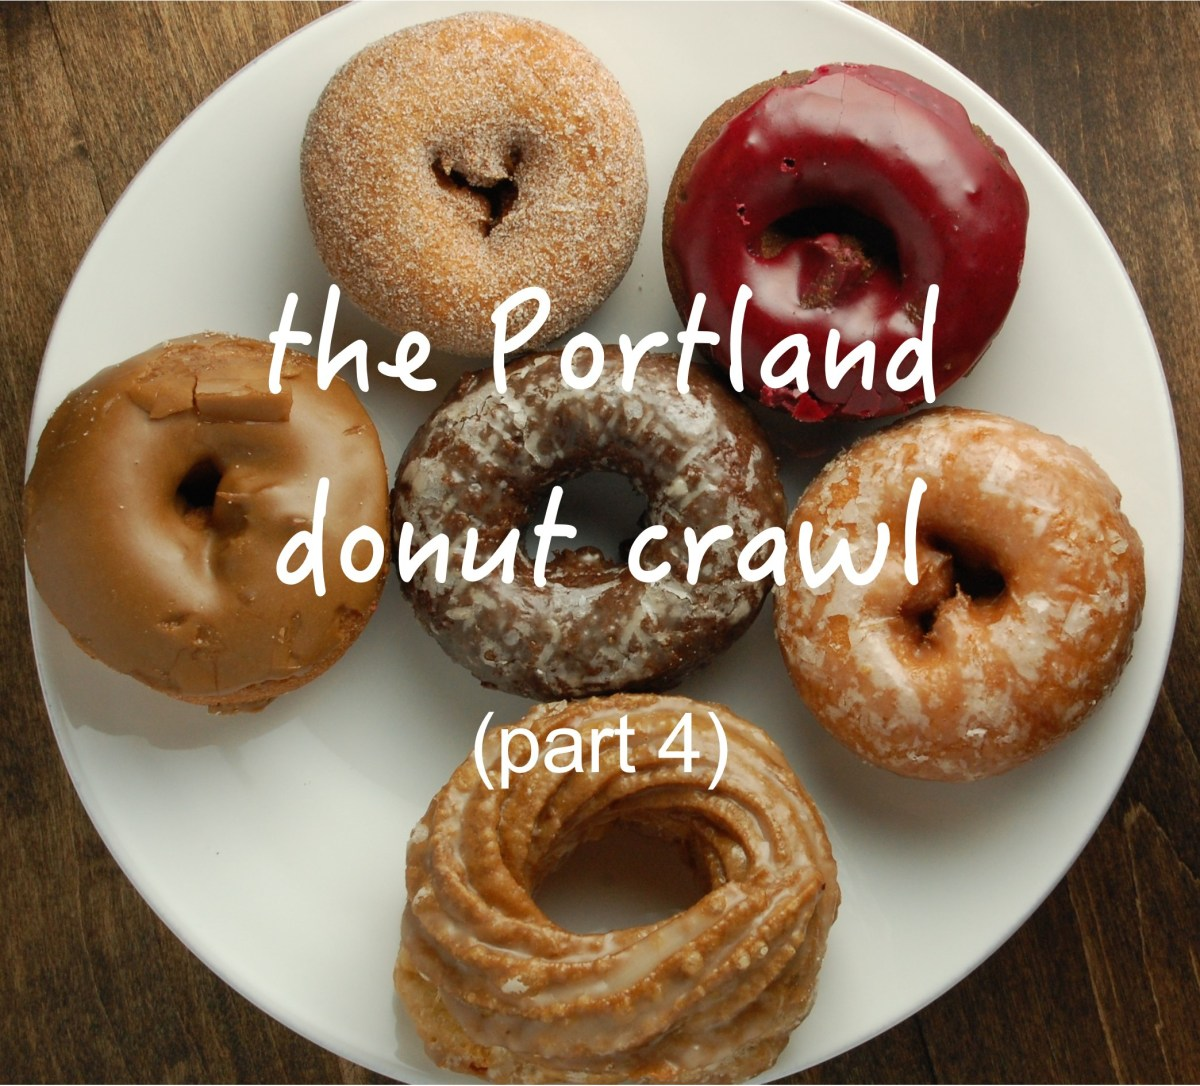 the portland donut crawl (part 4).